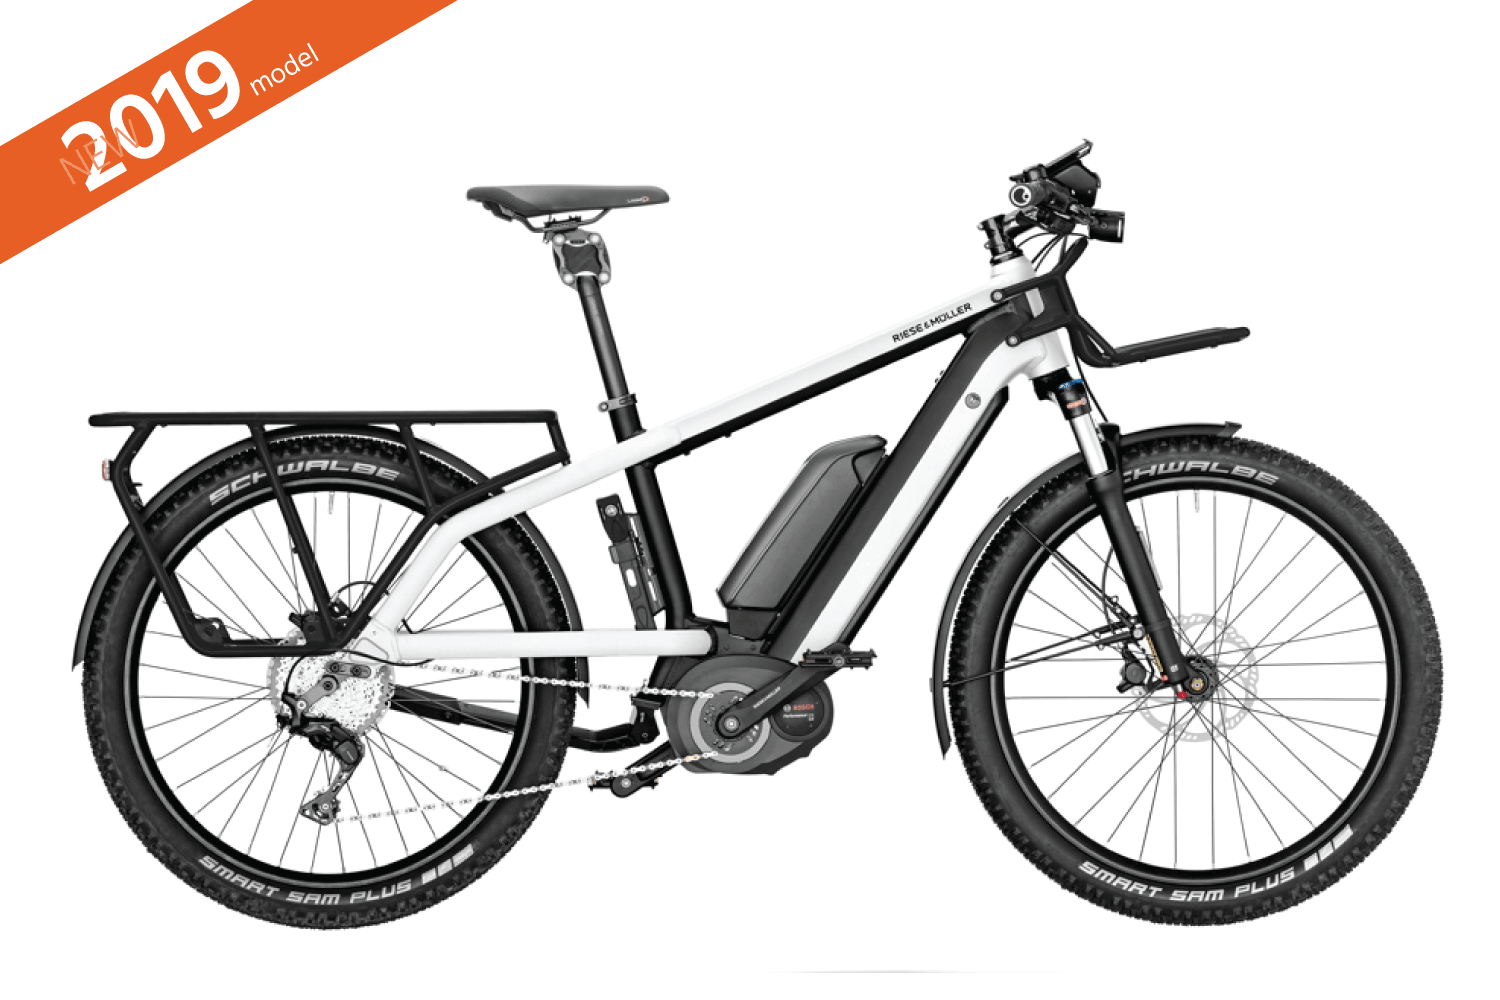 R&M • Multicharger GX touring